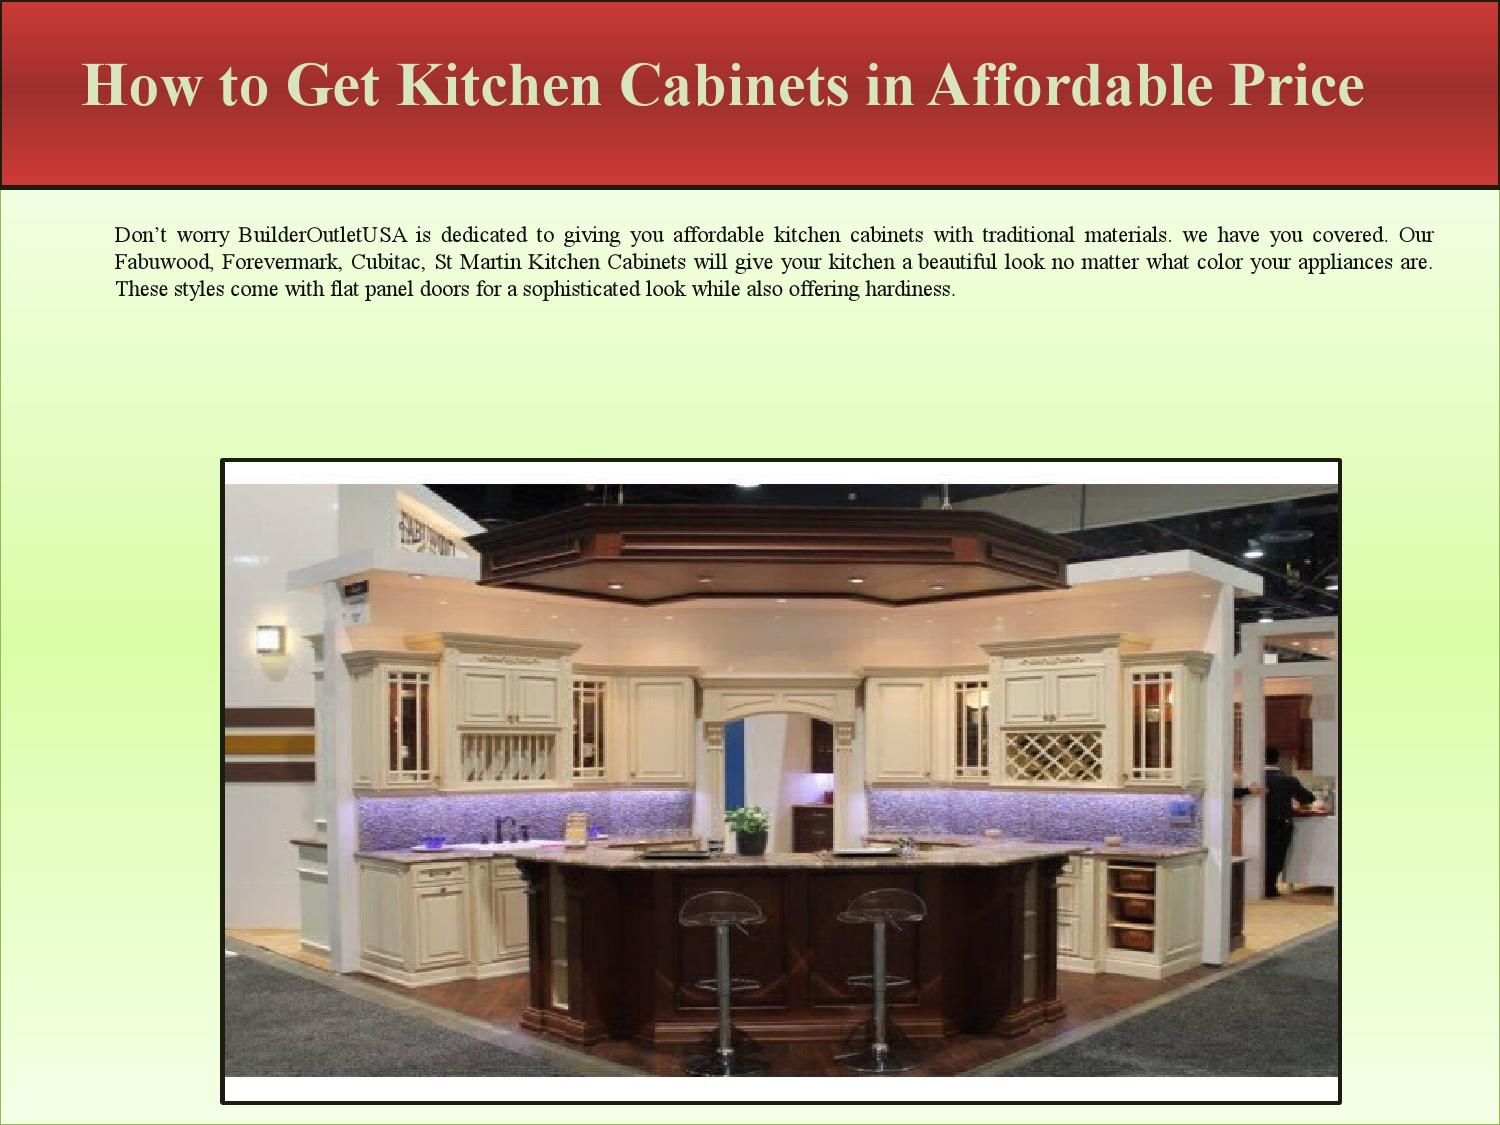 How To Get Cheap Kitchen Cabinets How To Get Kitchen Cabinets In Affordable Price By